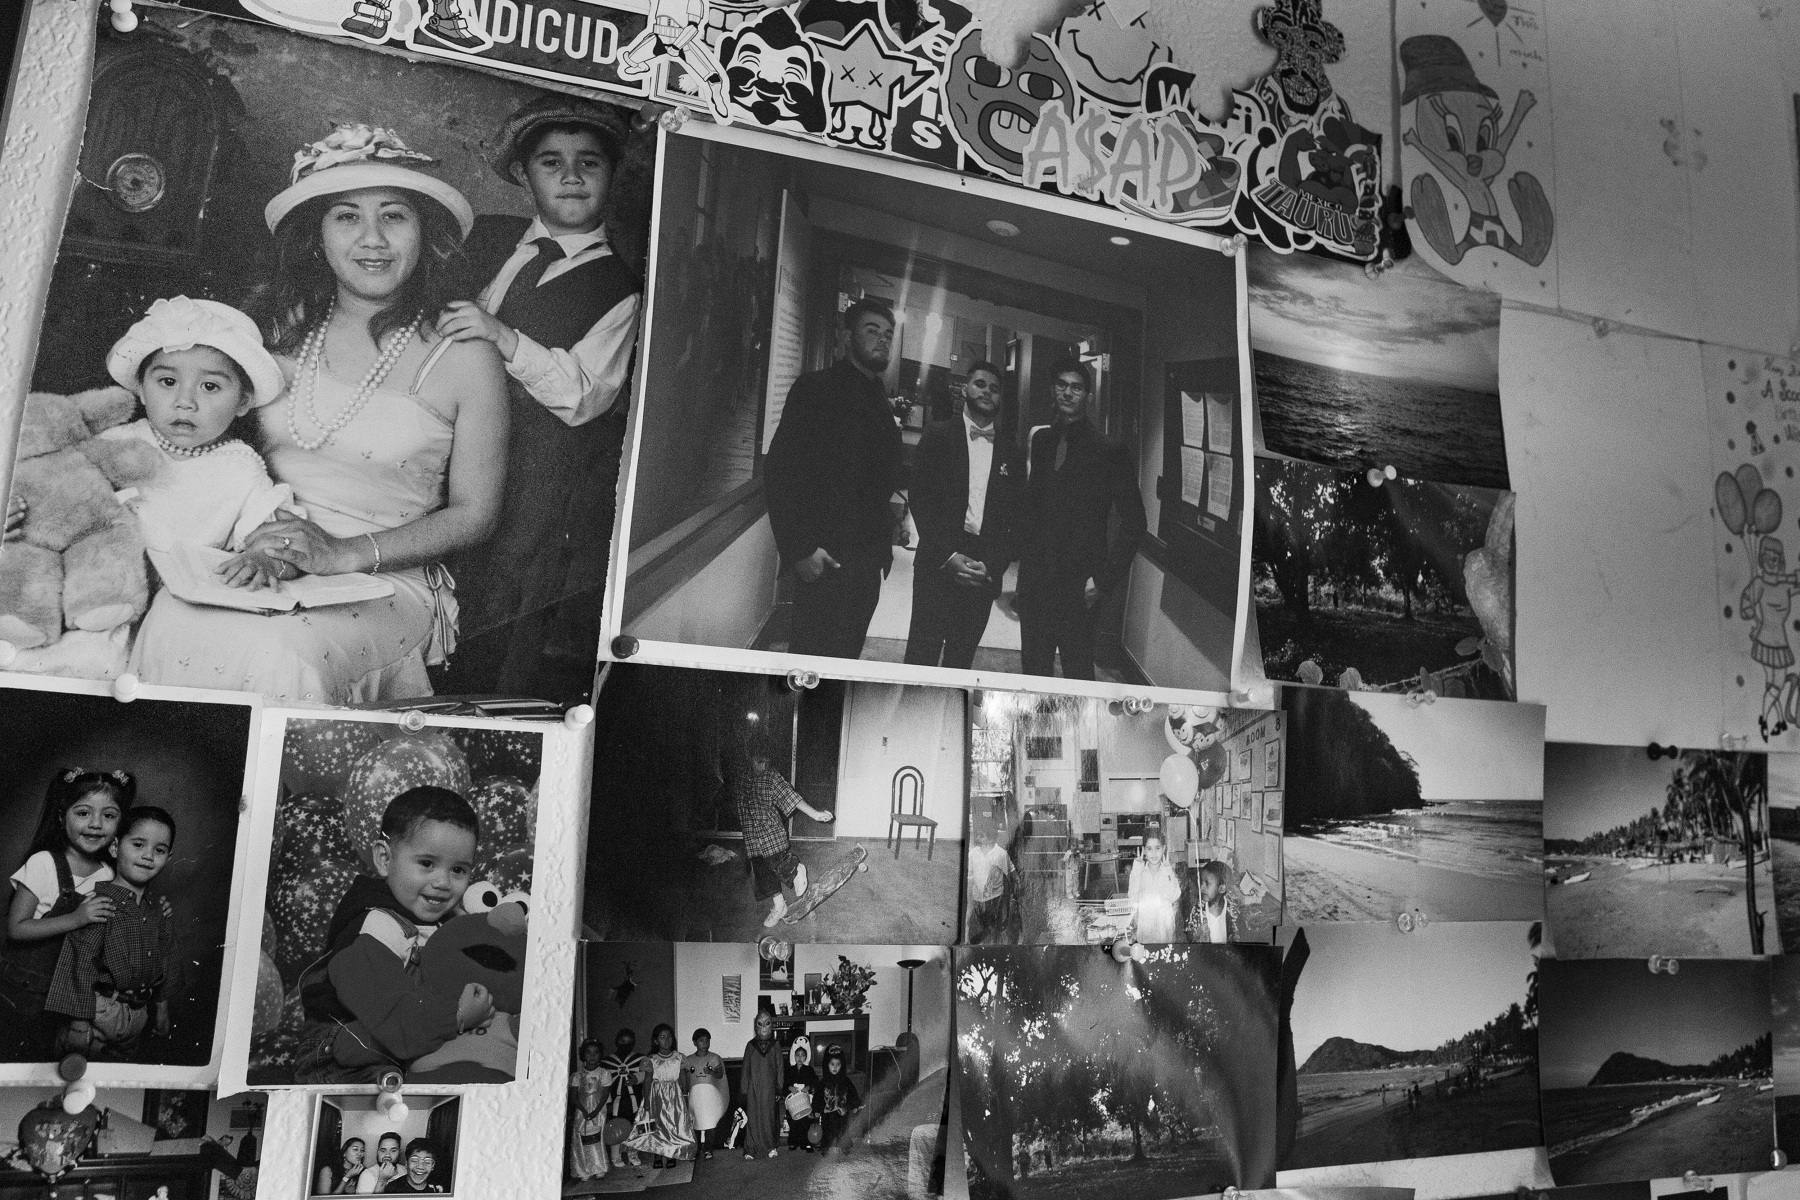 Photos are remnants of childhood memories for the Cruz family. Omar Cruz's new apartment wall is covered with photos of friends and family. On the far left hand corner is a family portrait of Adriana with Kimberly and Omar before her son Adrian was born.